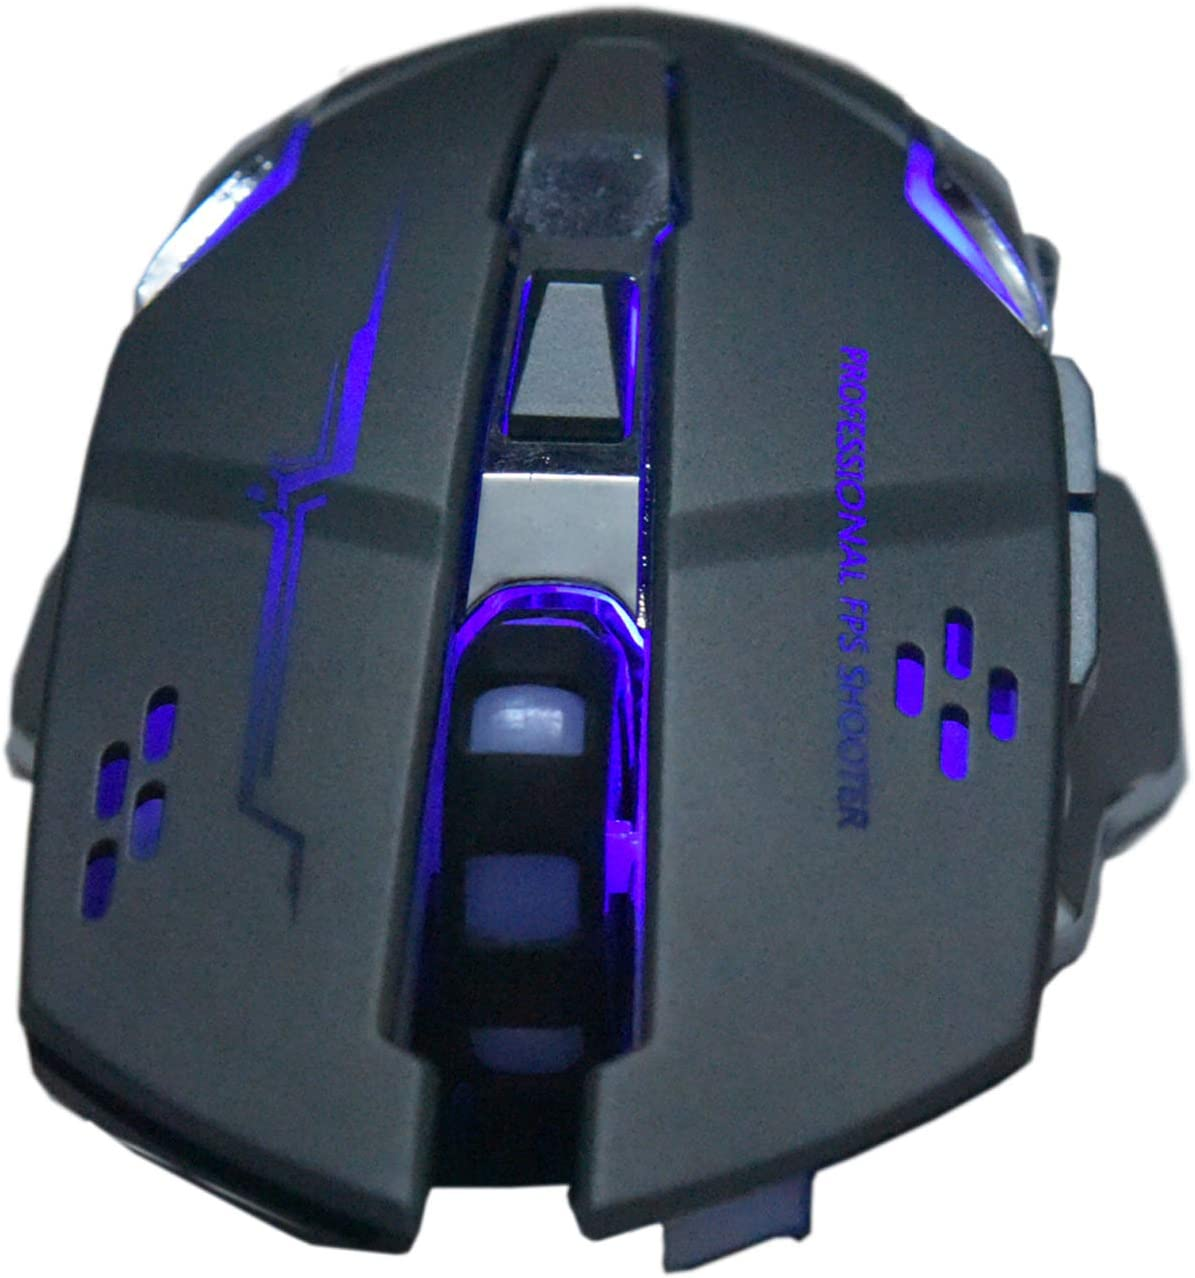 Wireless Charging Gaming Mouse, Silent Luminous Mechanical Mouse, with USB Receiver, Suitable for PC, Tablet, Laptop (Gray)